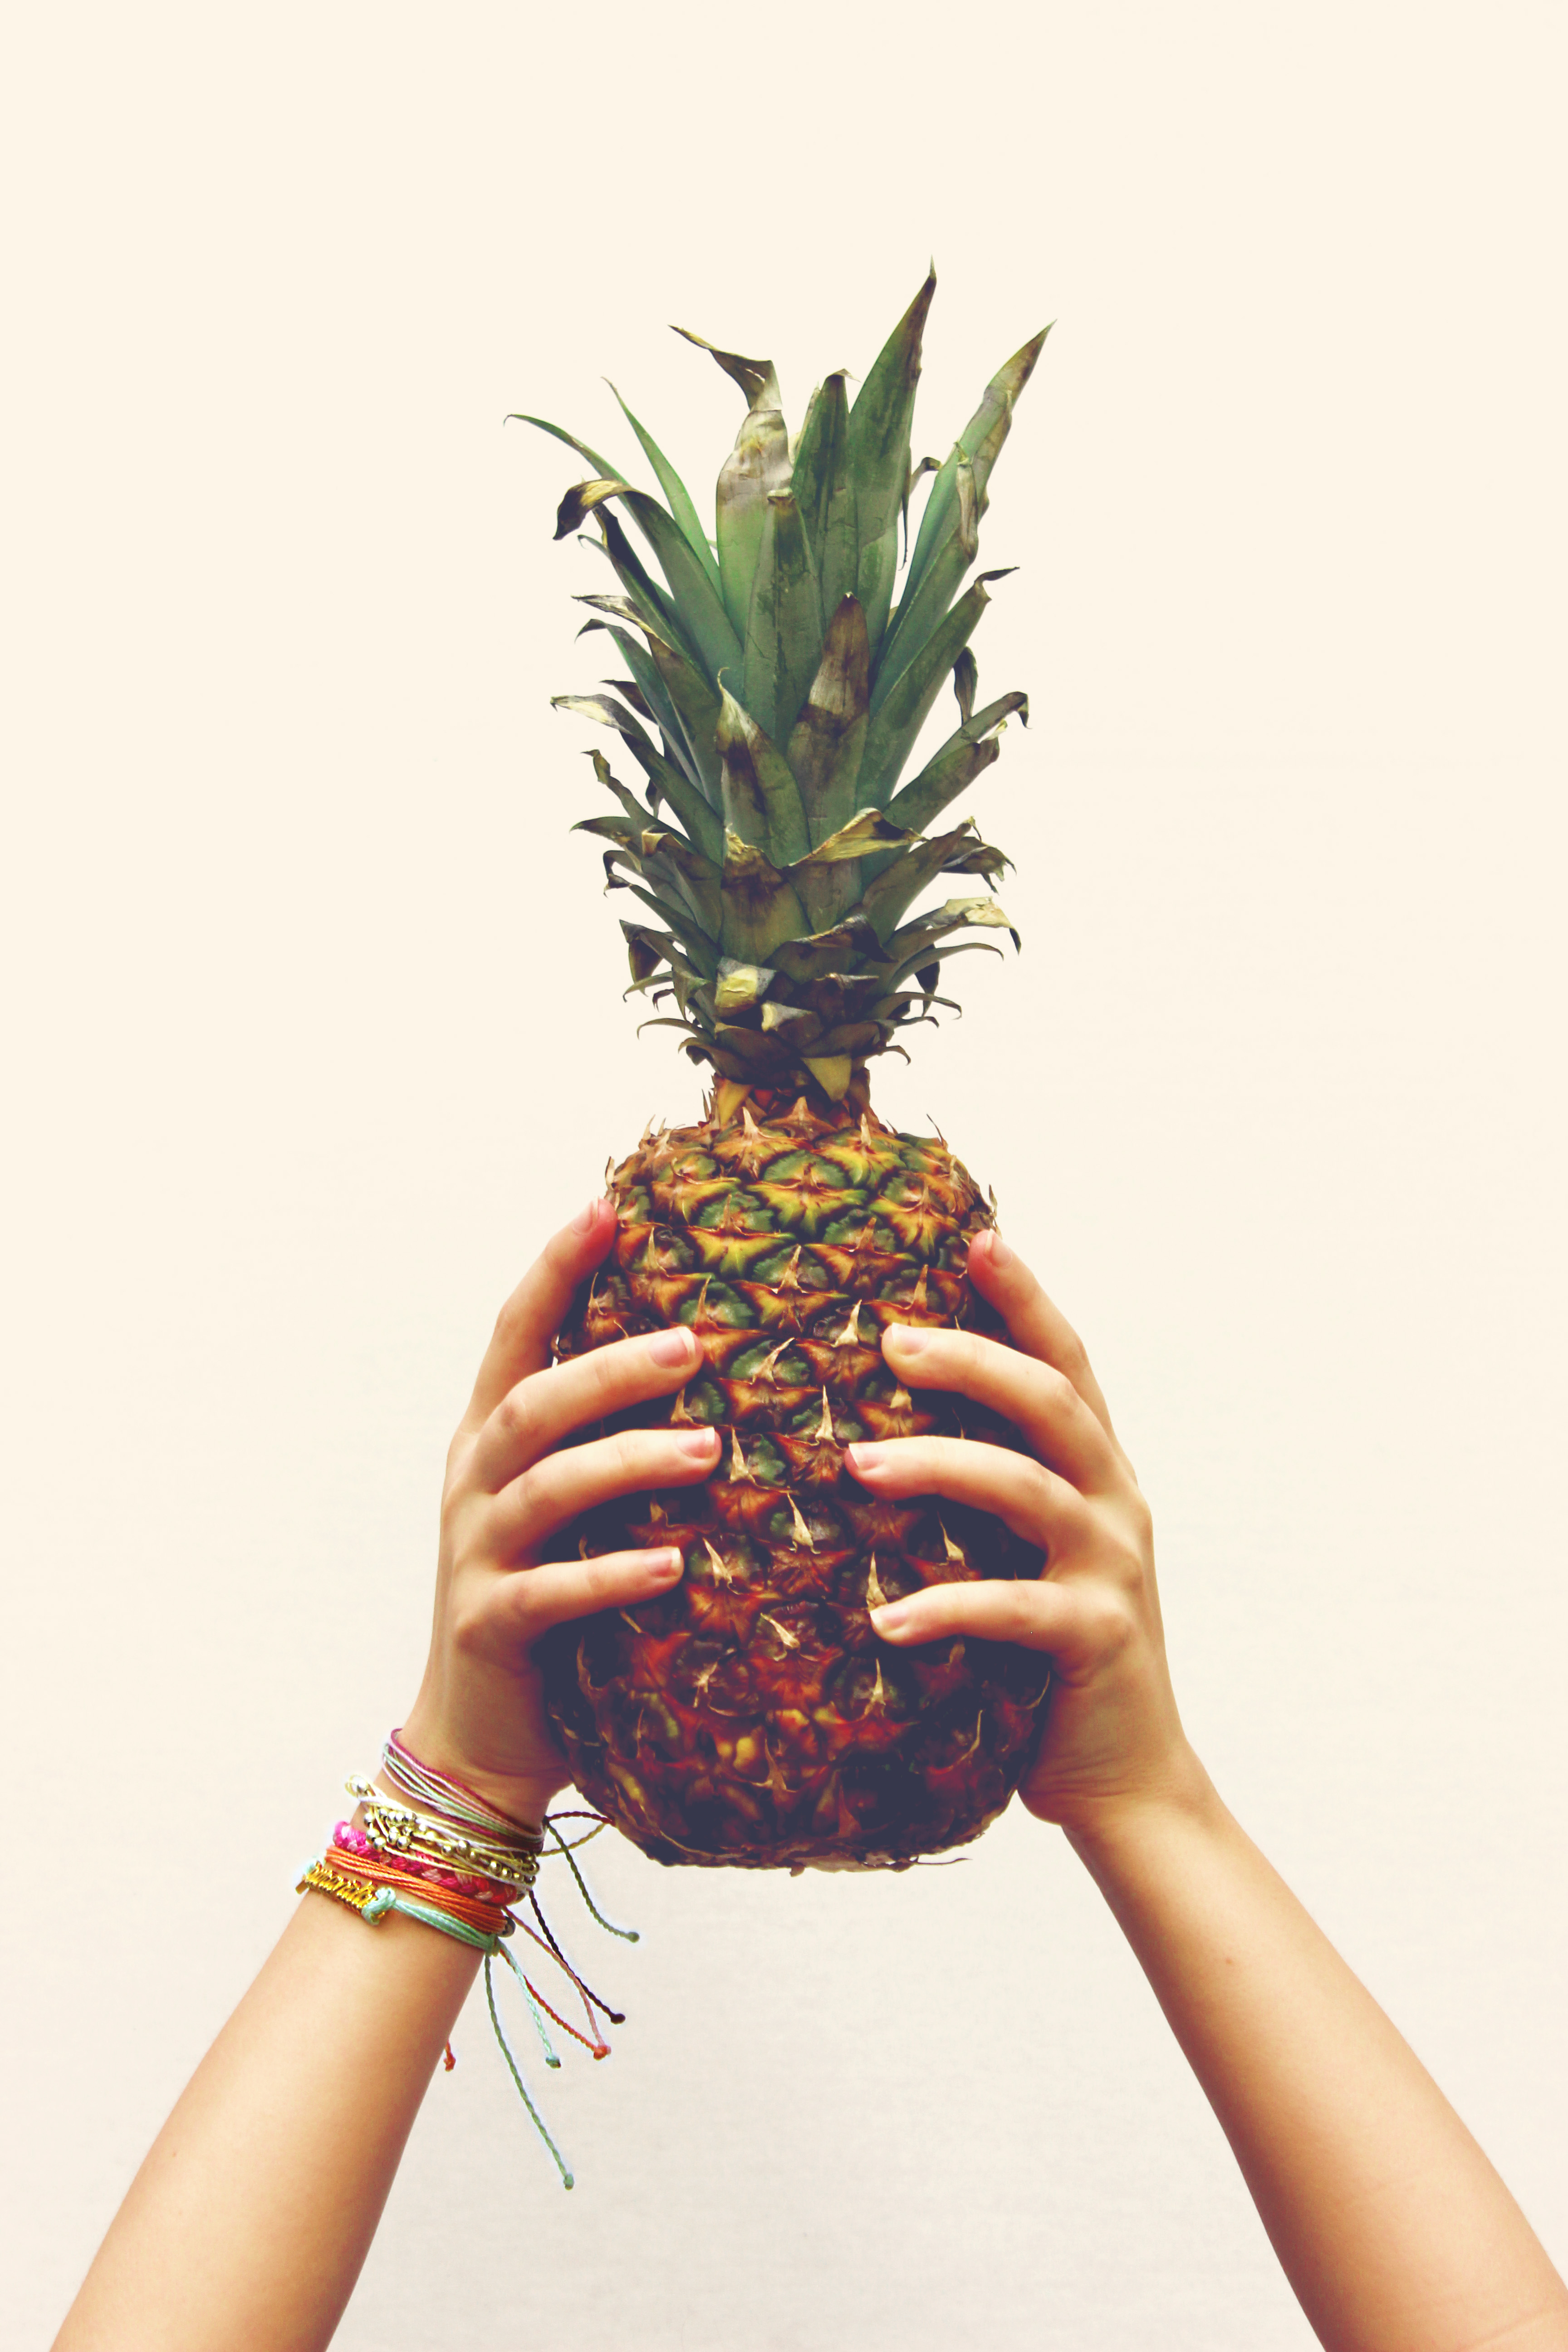 Pineapple Photography Tumblr Www Pixshark Com Images Galleries With A Bite